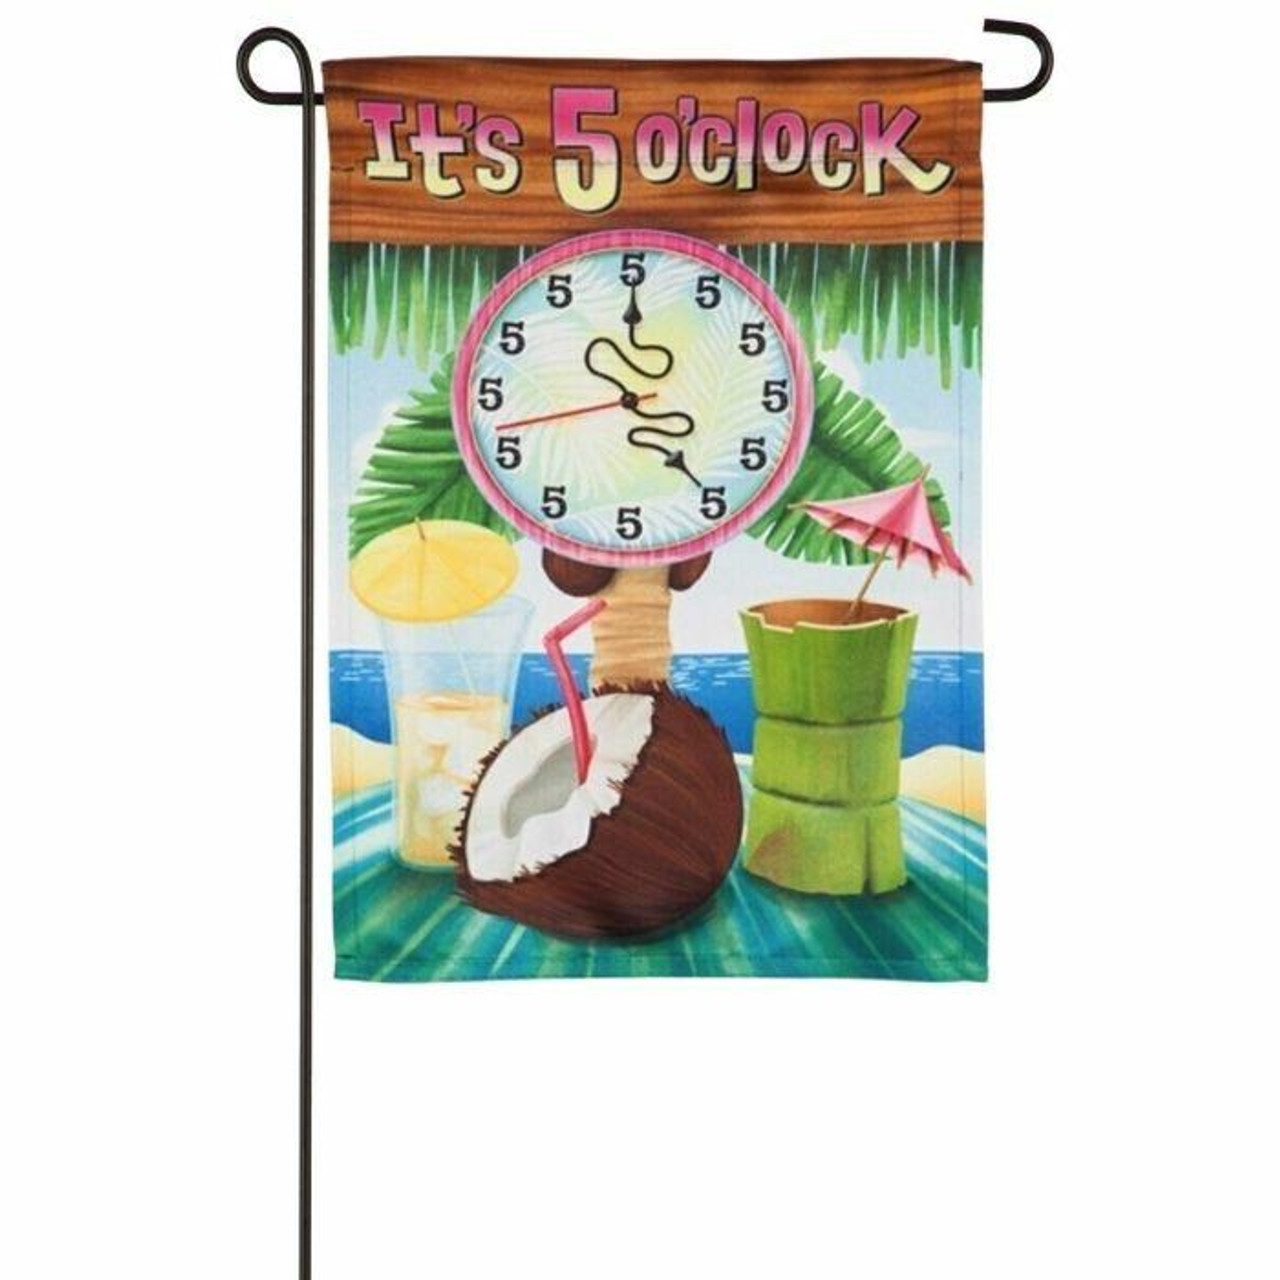 """This garden flag features the beach in the background with a palm tree. There is a blue towel in the middle of the flag with a coconut drink, and two other cocktails with umbrellas in them. There is a clock with all 5's on the face and above the clock is the text """"It's 5 o'clock."""""""